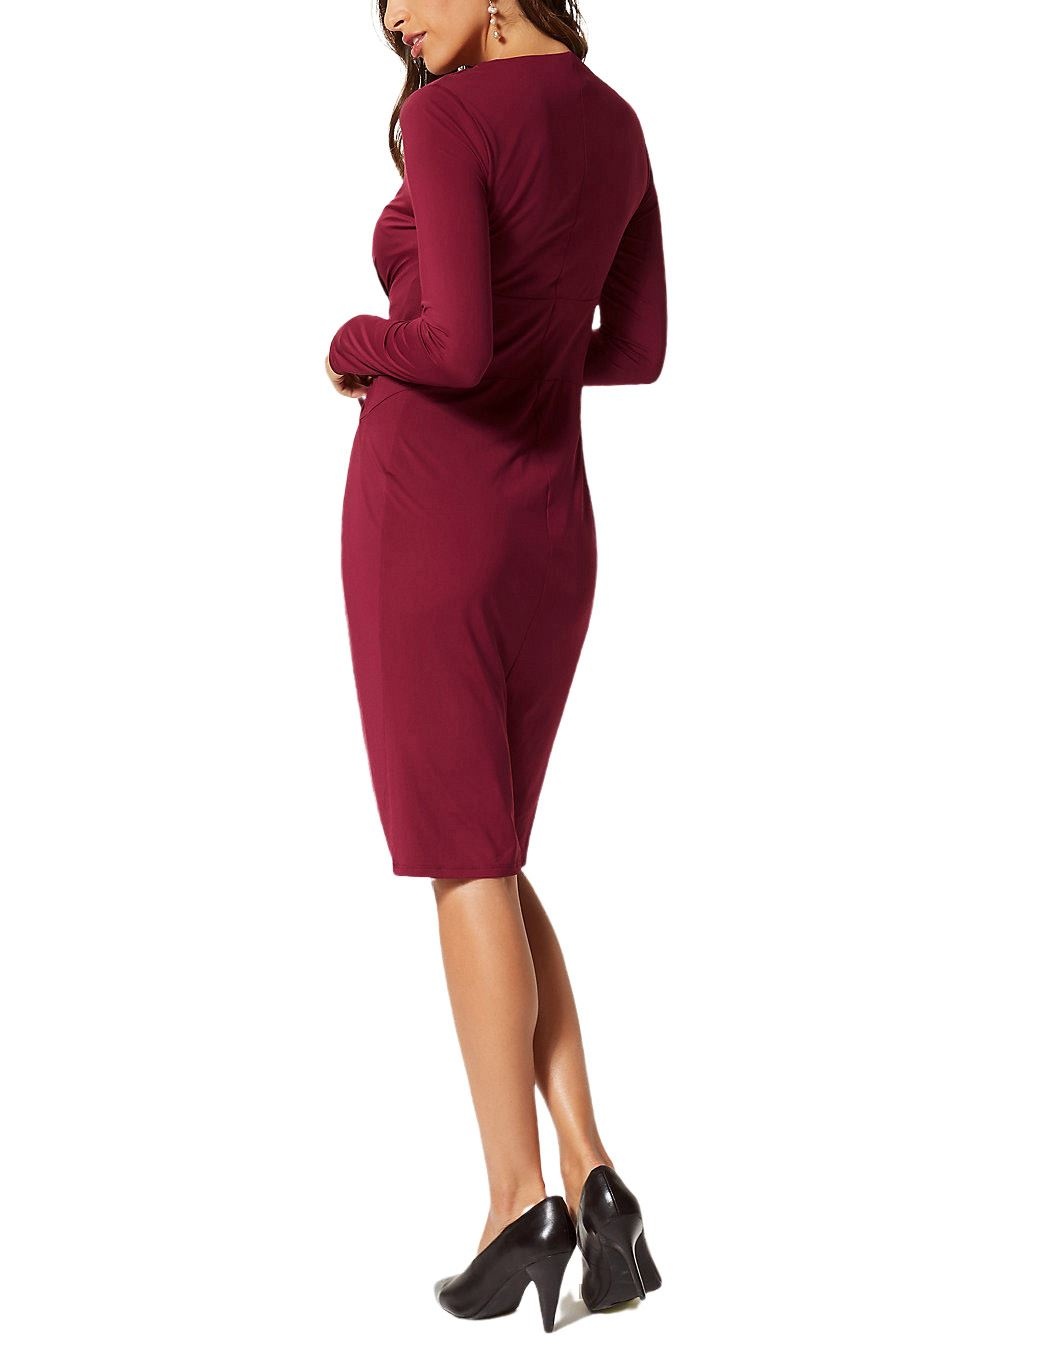 Ex-M-amp-S-Marks-Spencer-Tie-Front-Stretch-Midi-Dress-Burgundy-or-Black-Size-6-22 thumbnail 10